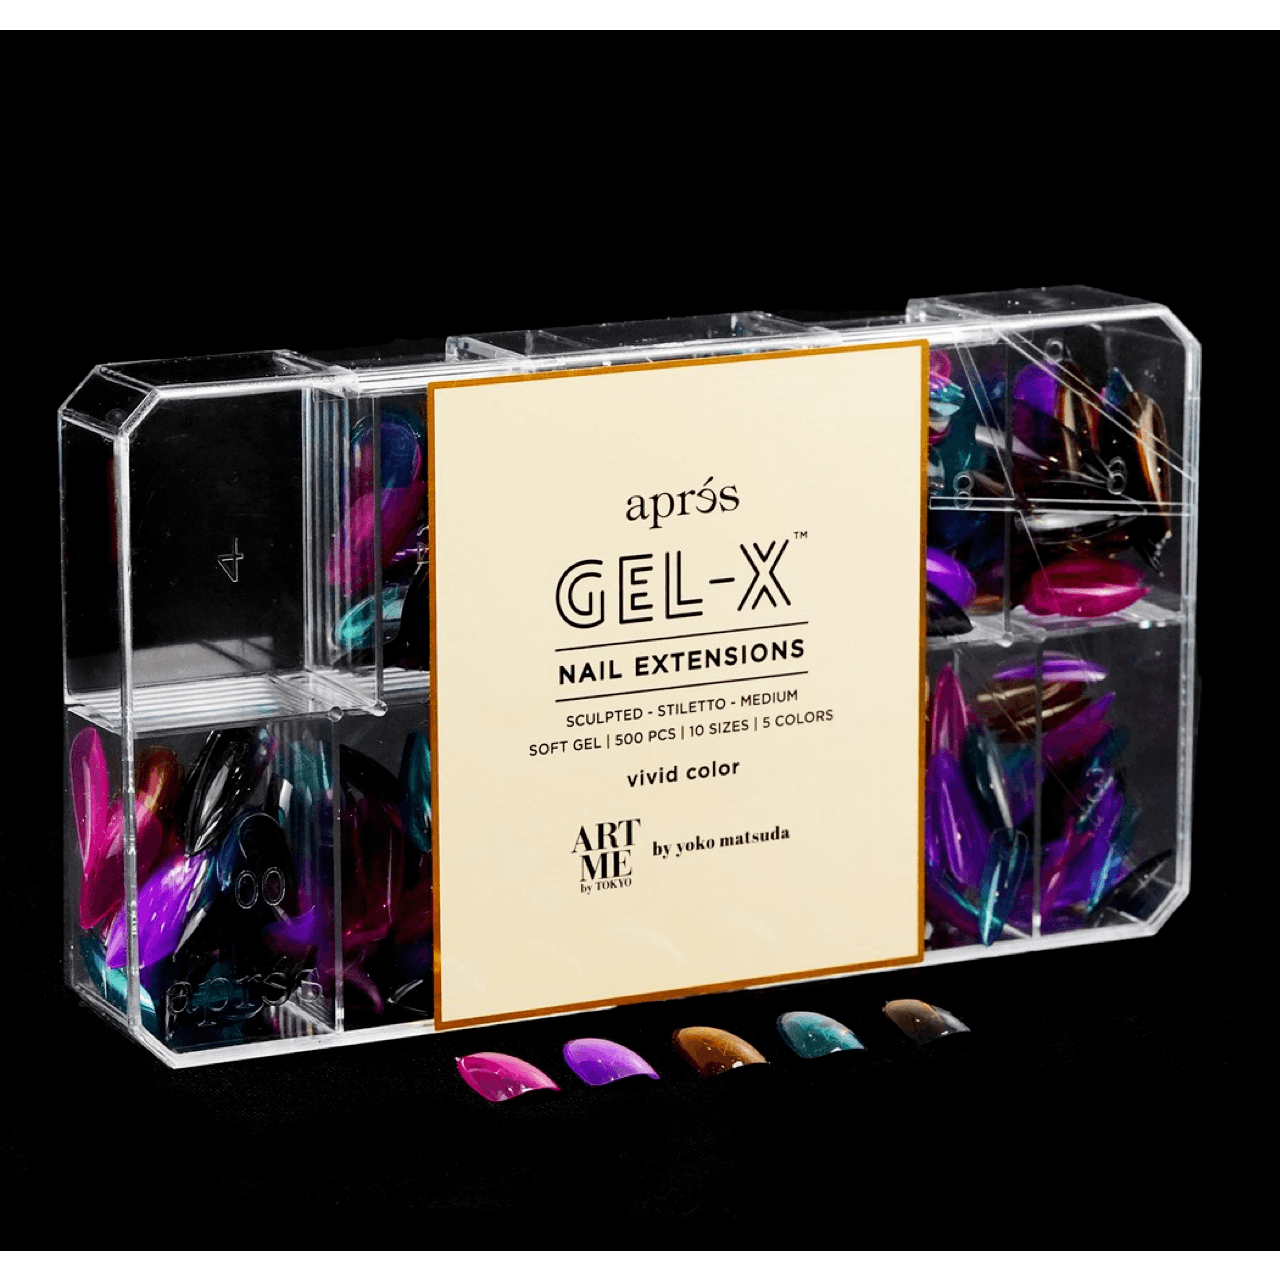 ArtMe x Aprés Gel-X Tips - Vivid Color - Sculpted Stiletto Medium-Gel System-Universal Nail Supplies